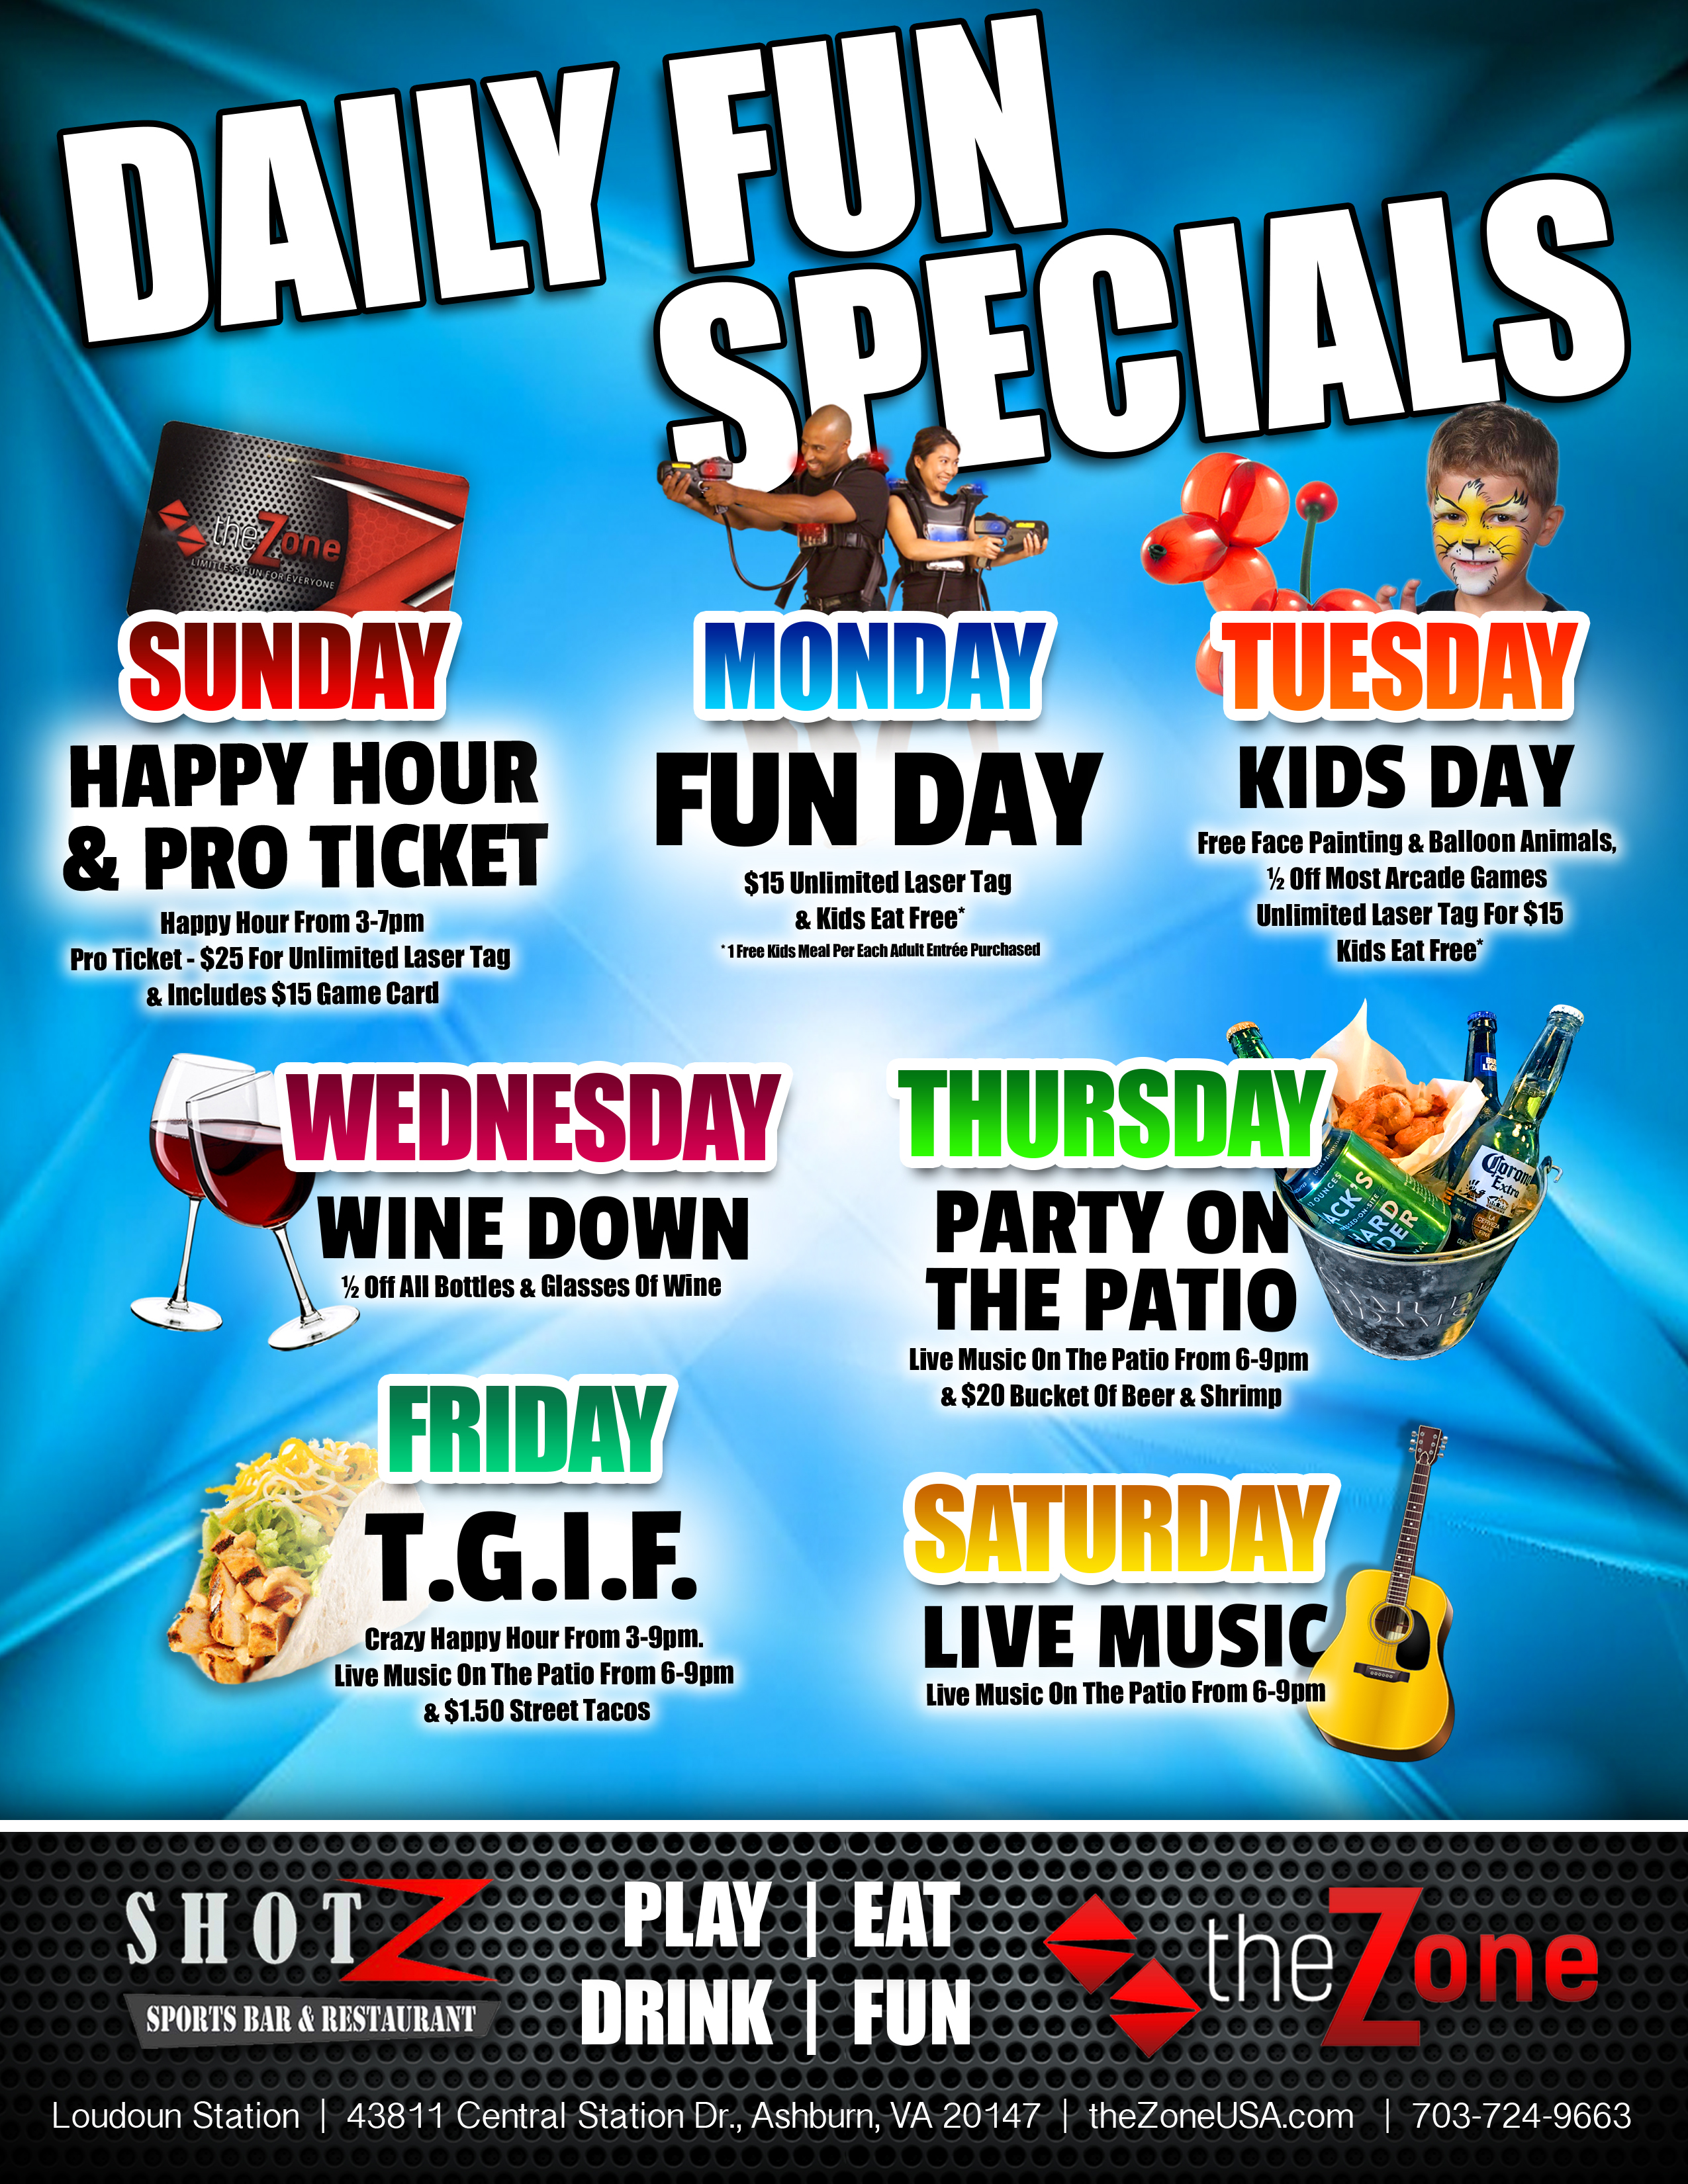 Daily Fun Specials Blue